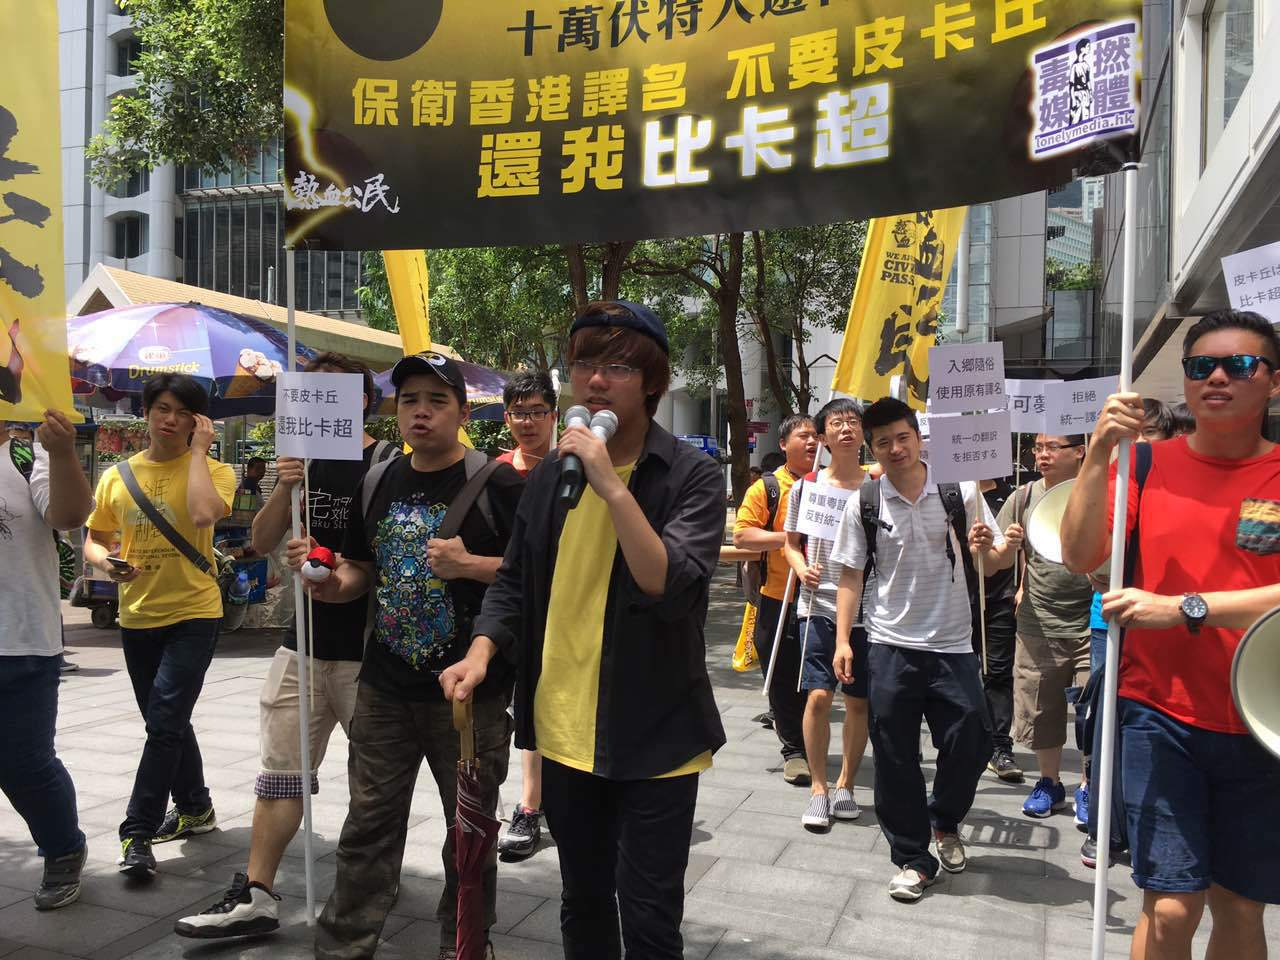 pokémon en chine manifestation